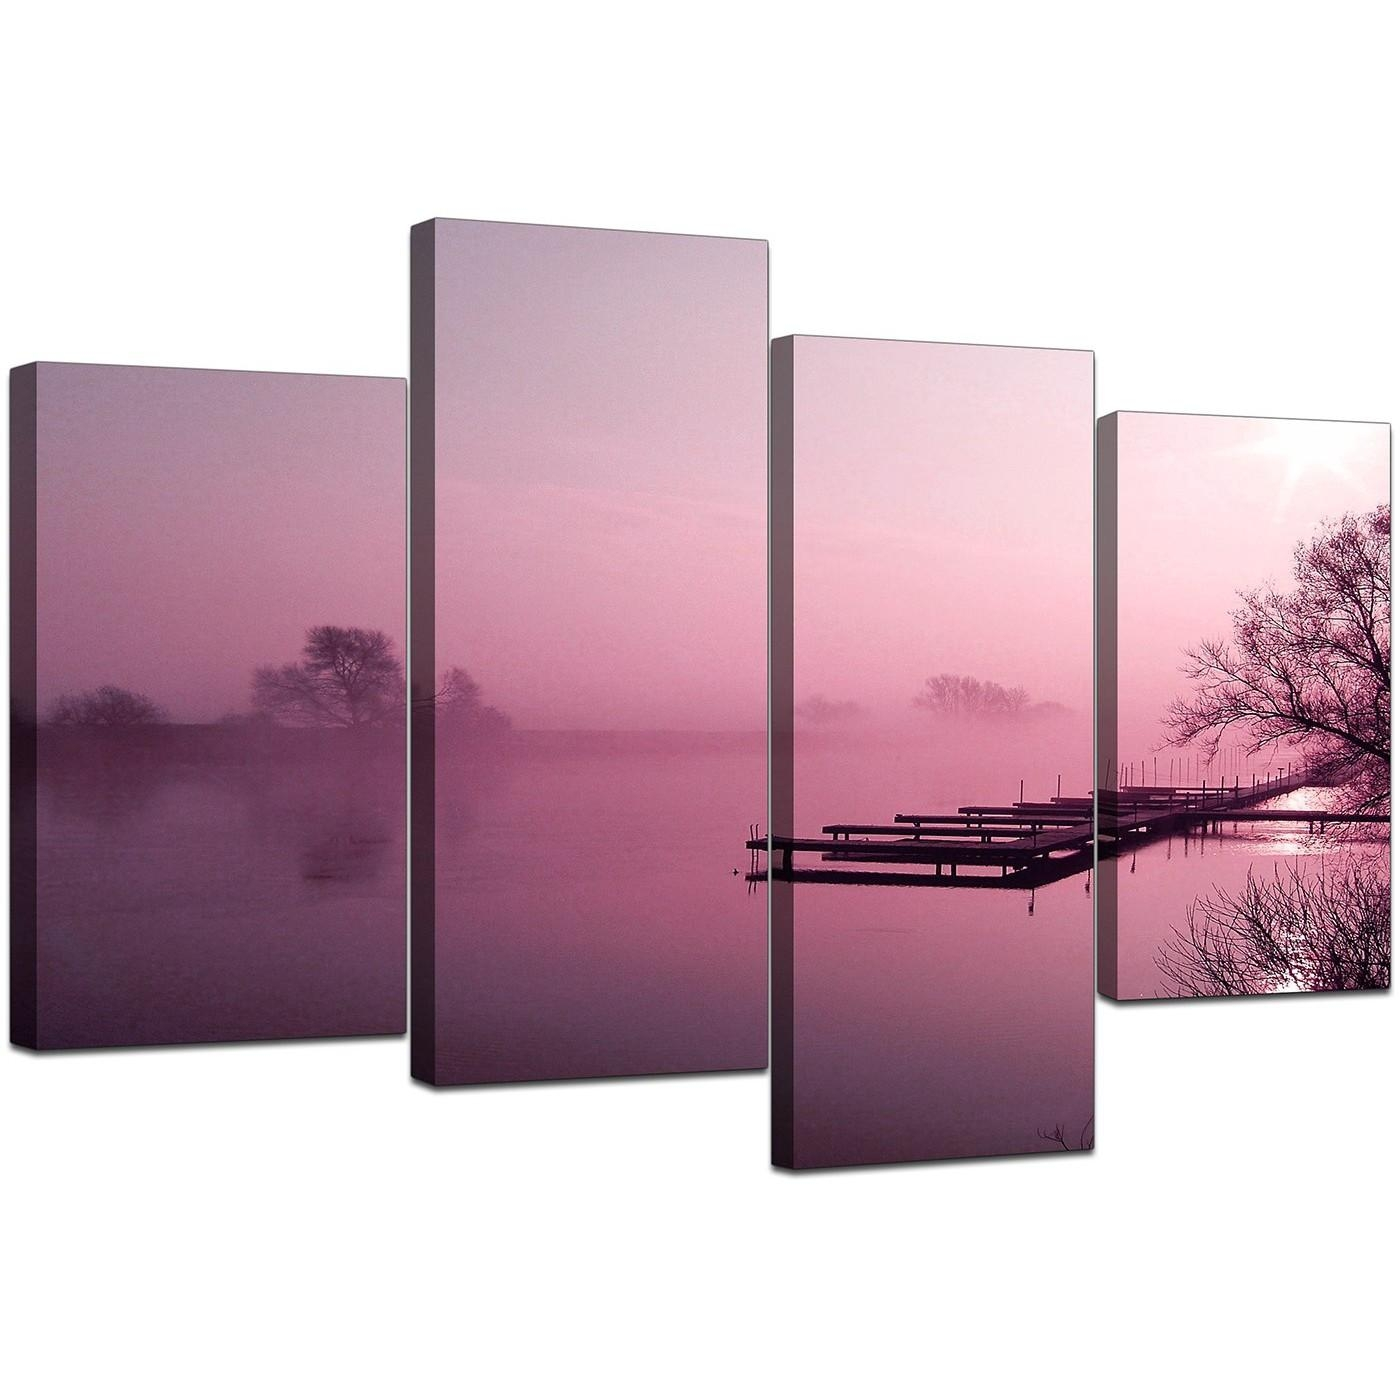 Canvas Pictures Of River Landscape In Plum For Your Dining Room Intended For Plum Coloured Wall Art (Image 2 of 20)